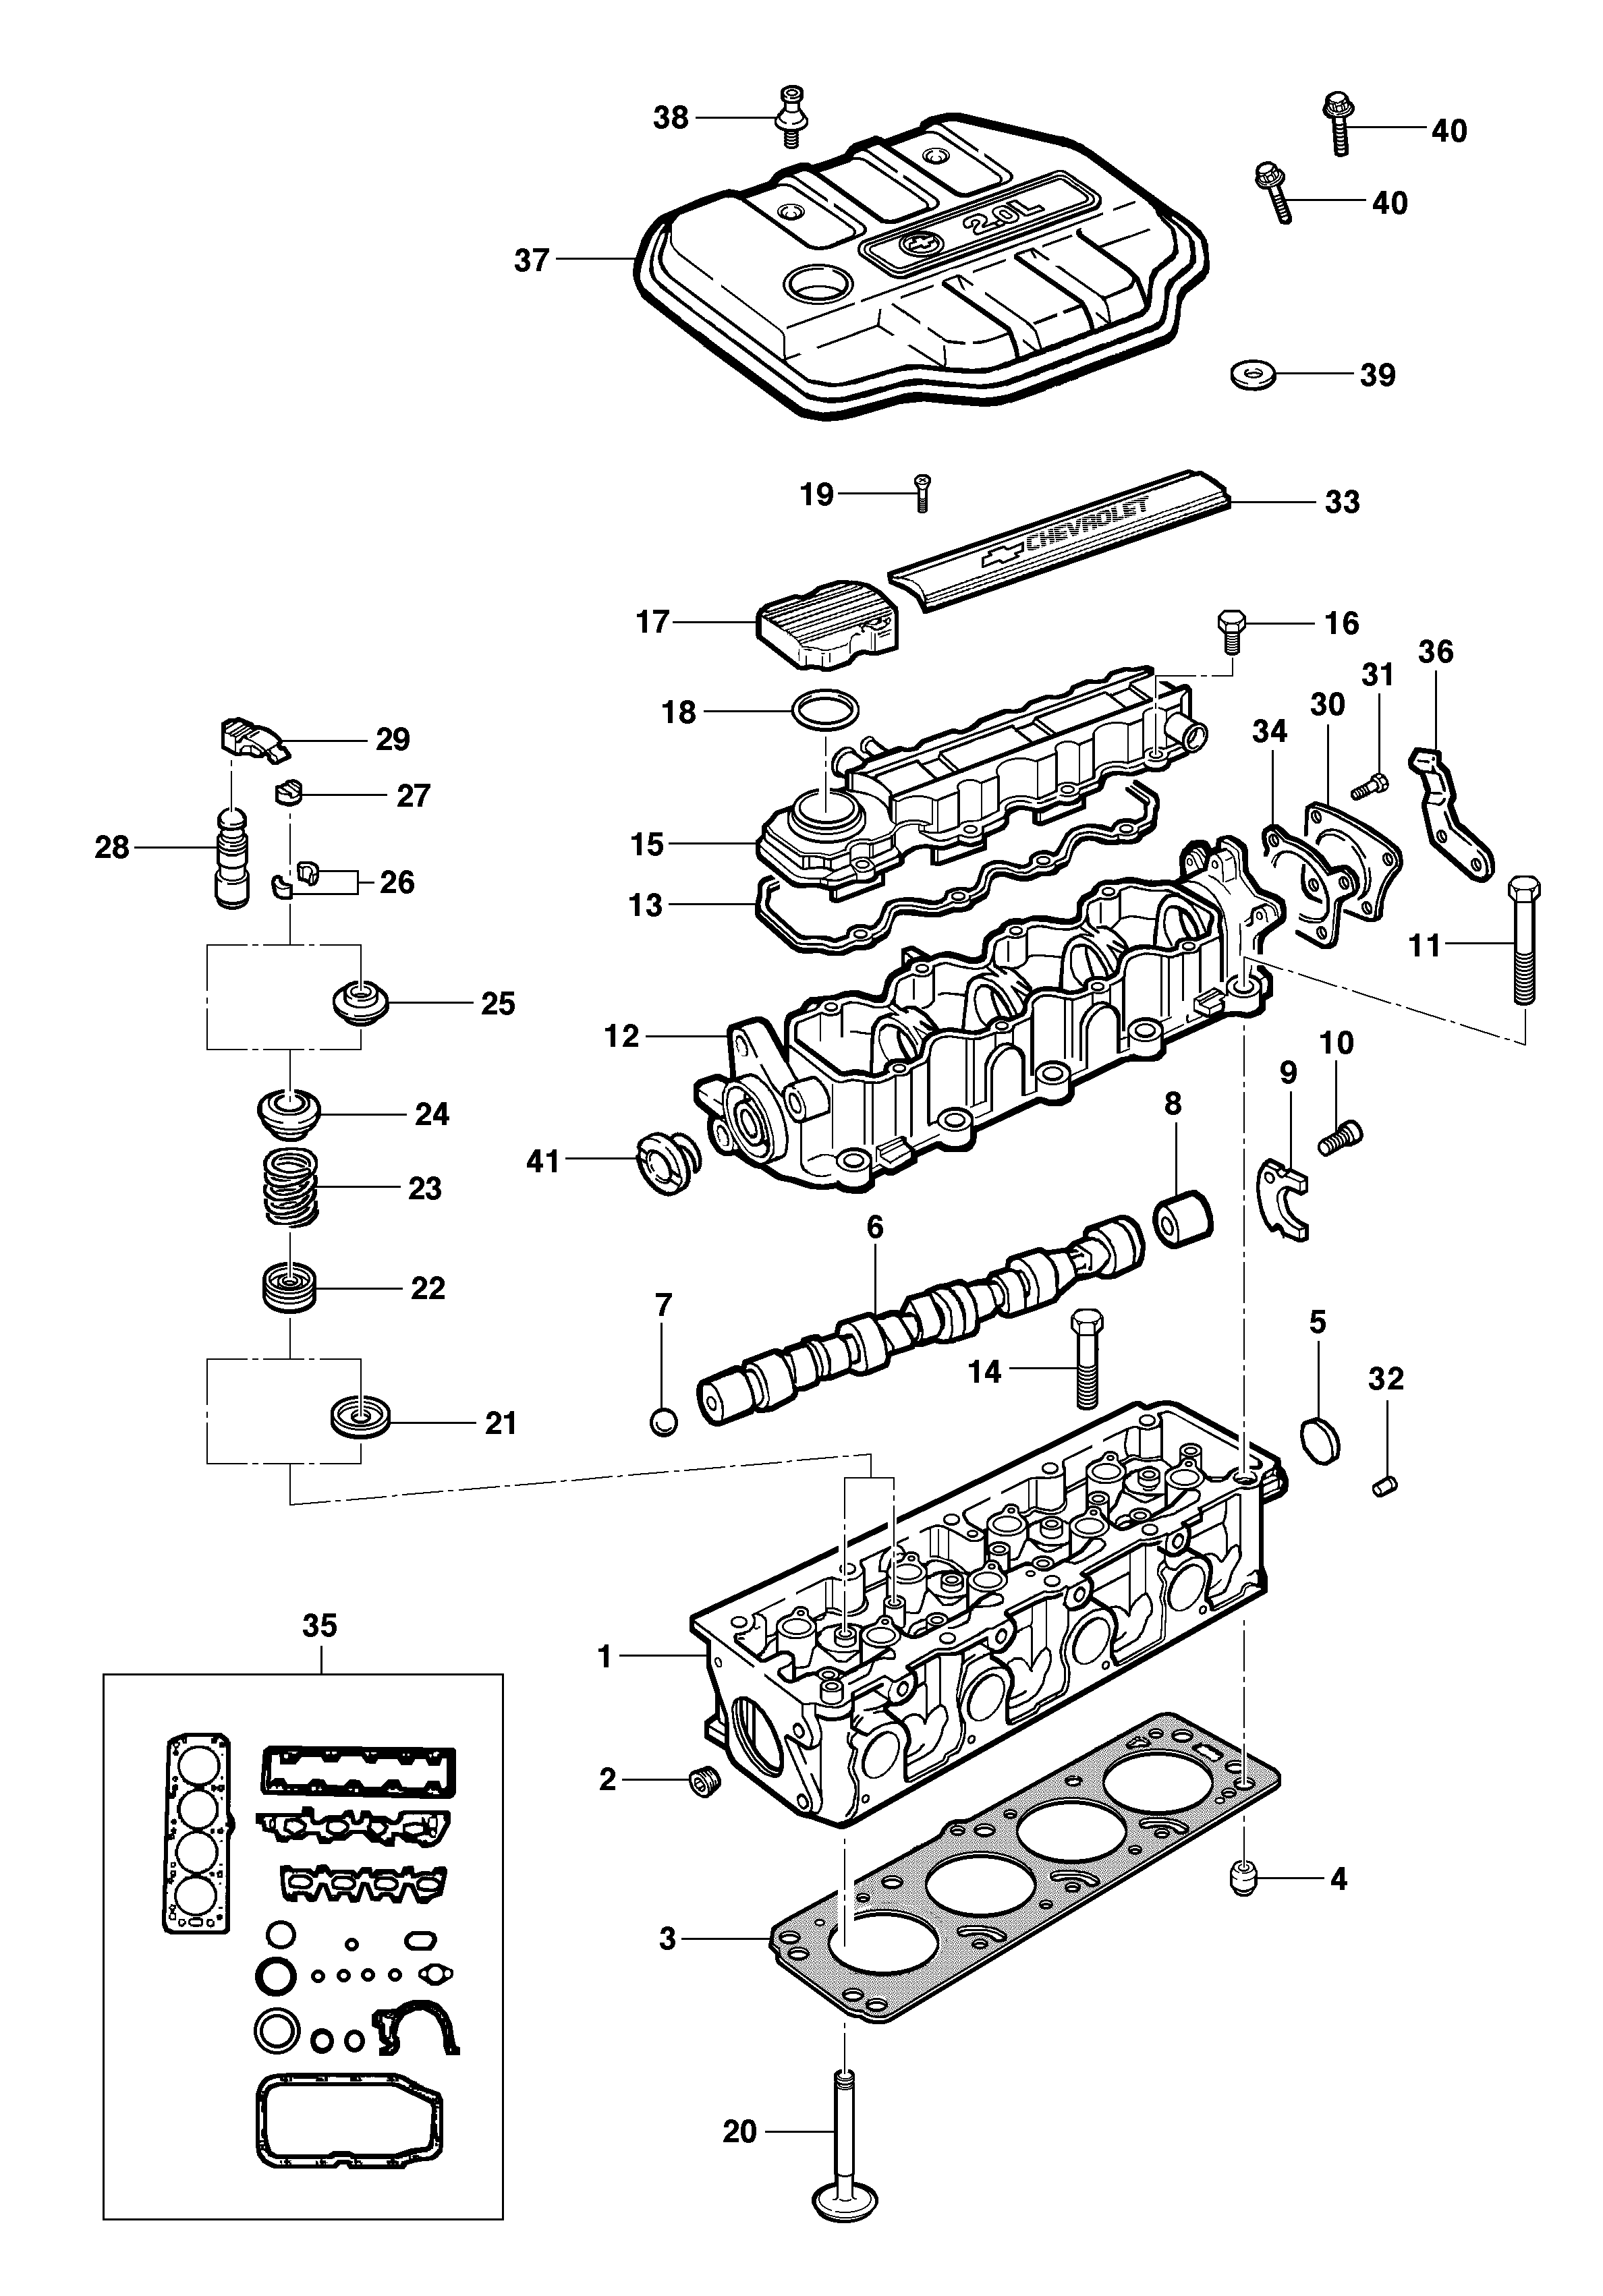 suzuki samurai alternator wiring diagram 8v wiring harness zukikrawlers wiring schematic diagram 14  8v wiring harness zukikrawlers wiring